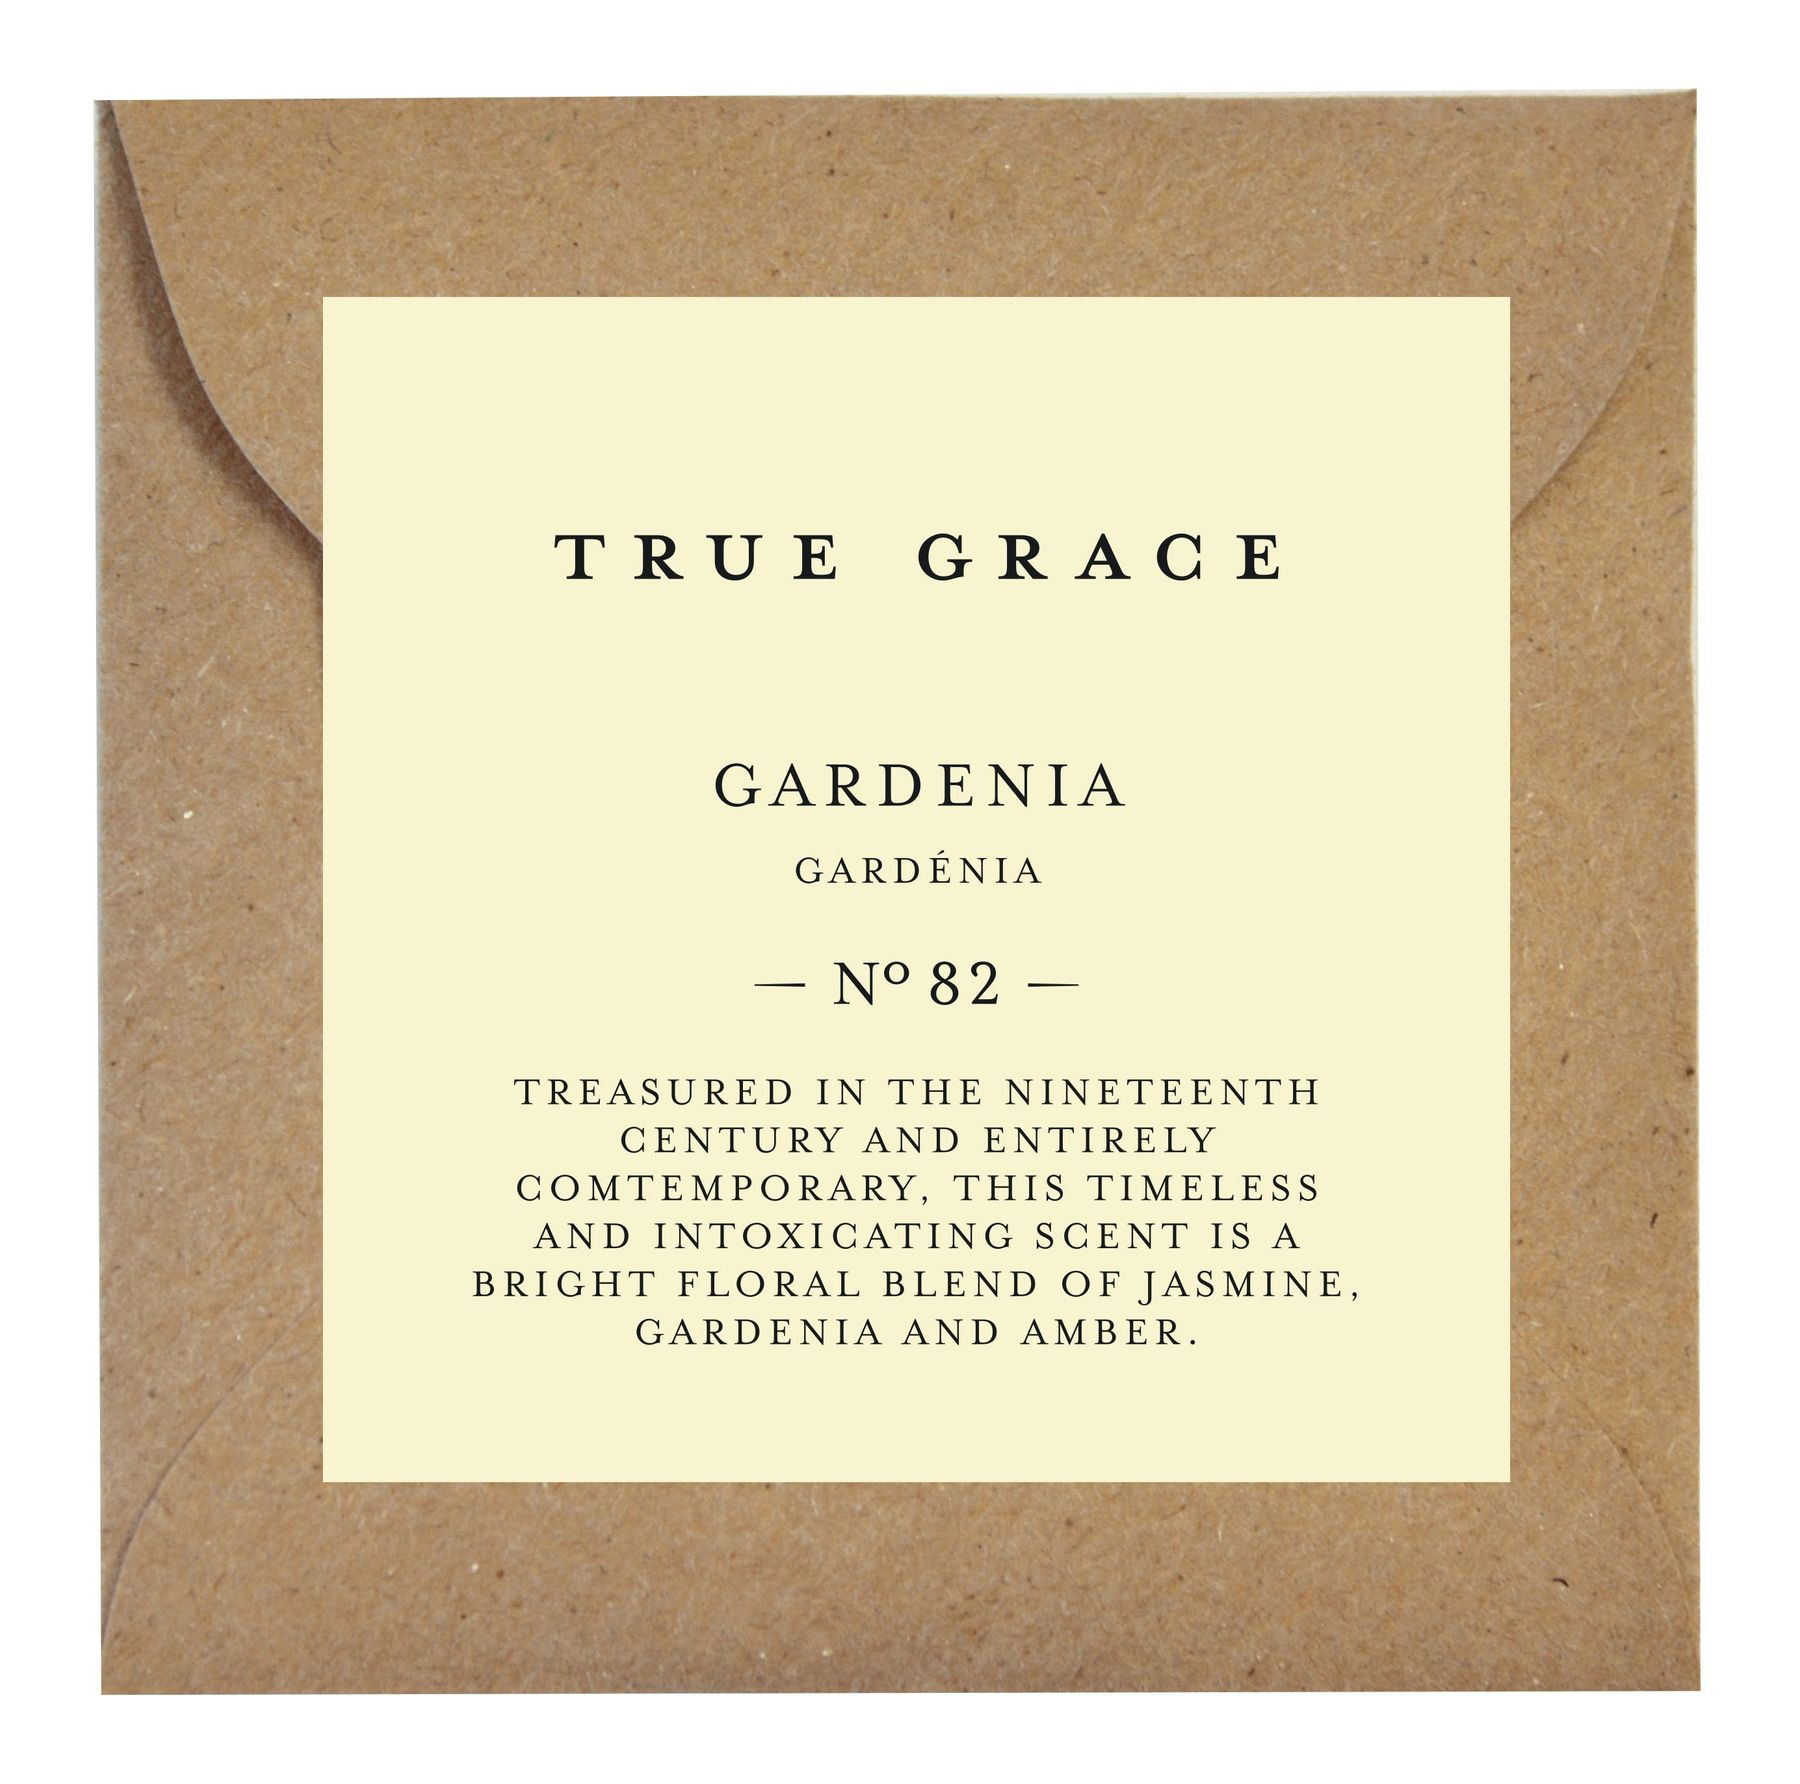 Ароматическое саше True Grace SCENTED LEAF № 82 Gardenia MANOR арт: SLE-M-82